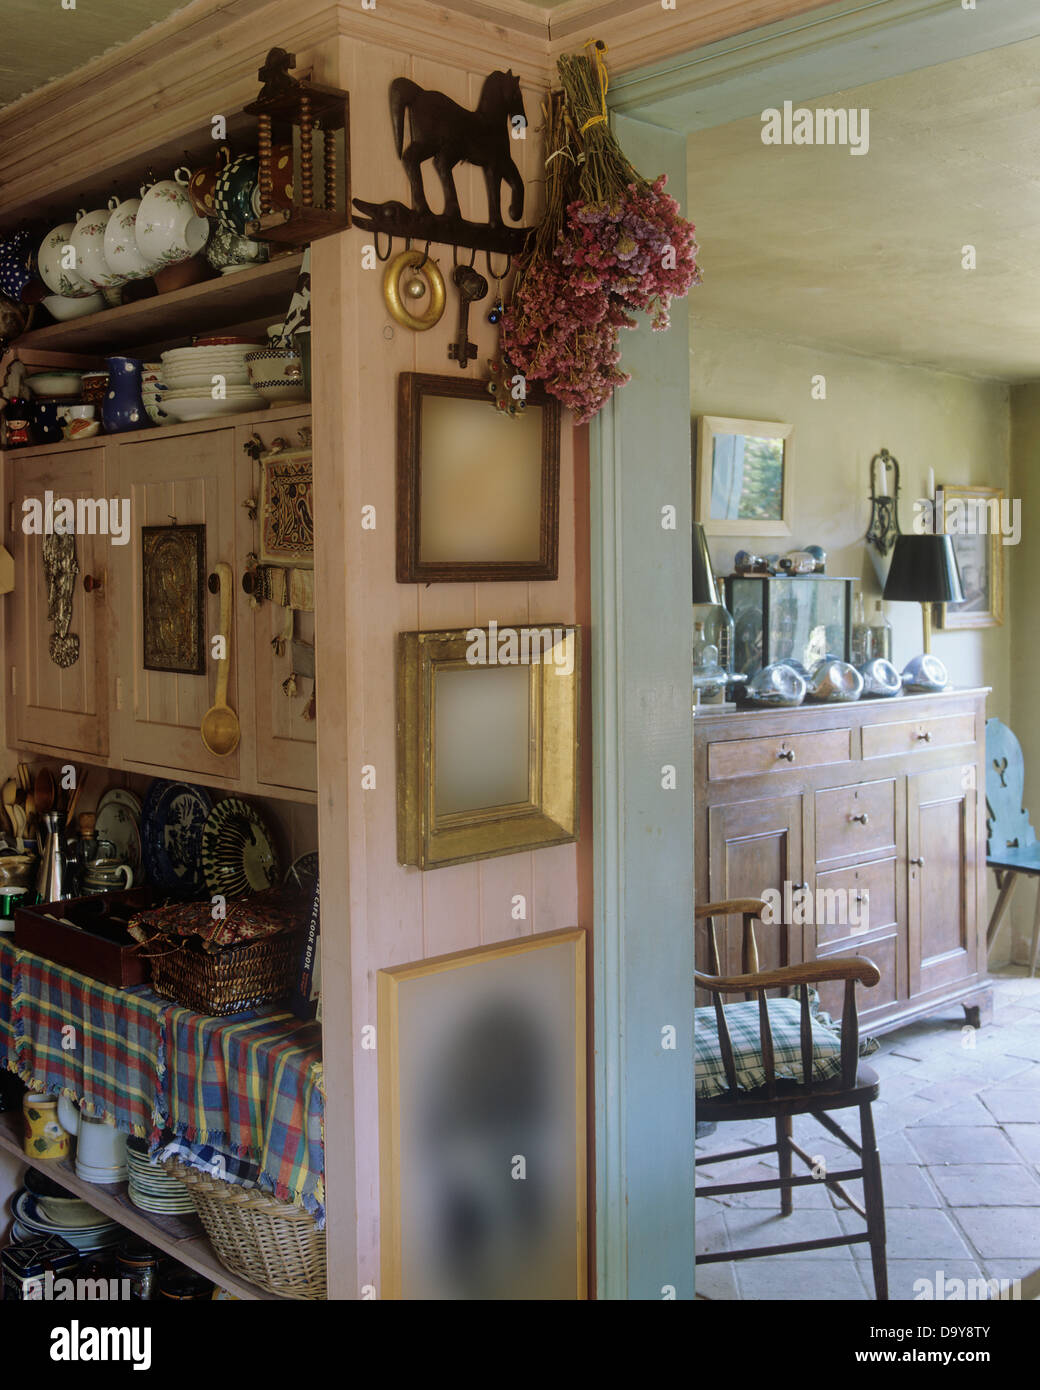 Pink Cabinet In Country Kitchen With Dried Flowers And Picture Frames On Wall Beside Doorway To Dining Room Sideboard